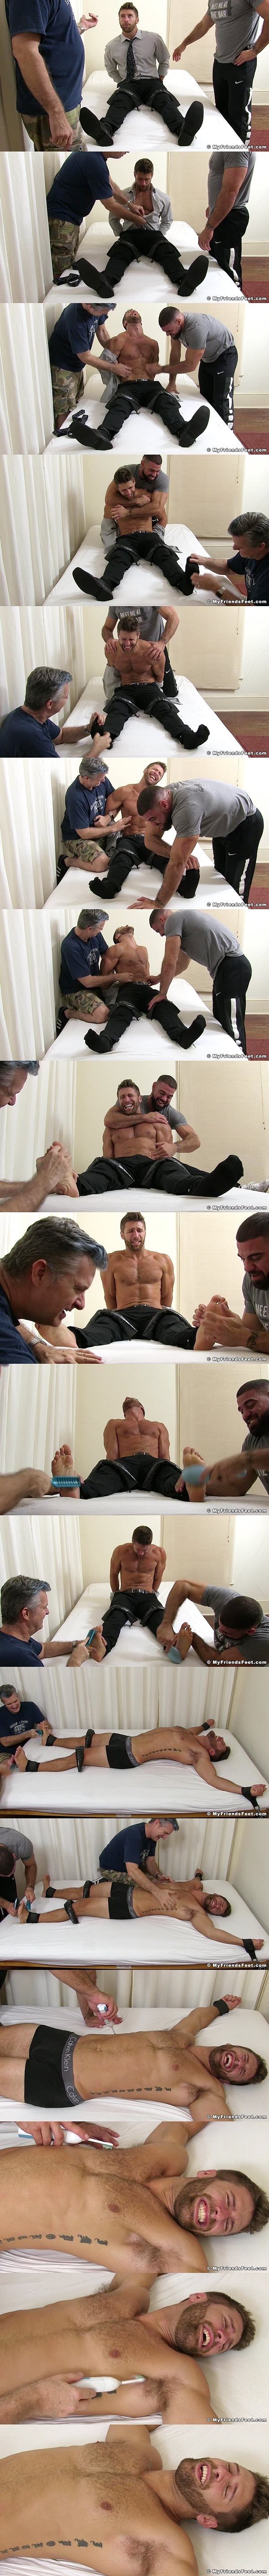 Myfriendsfeet - Internet Troll Blayne Tickled 02